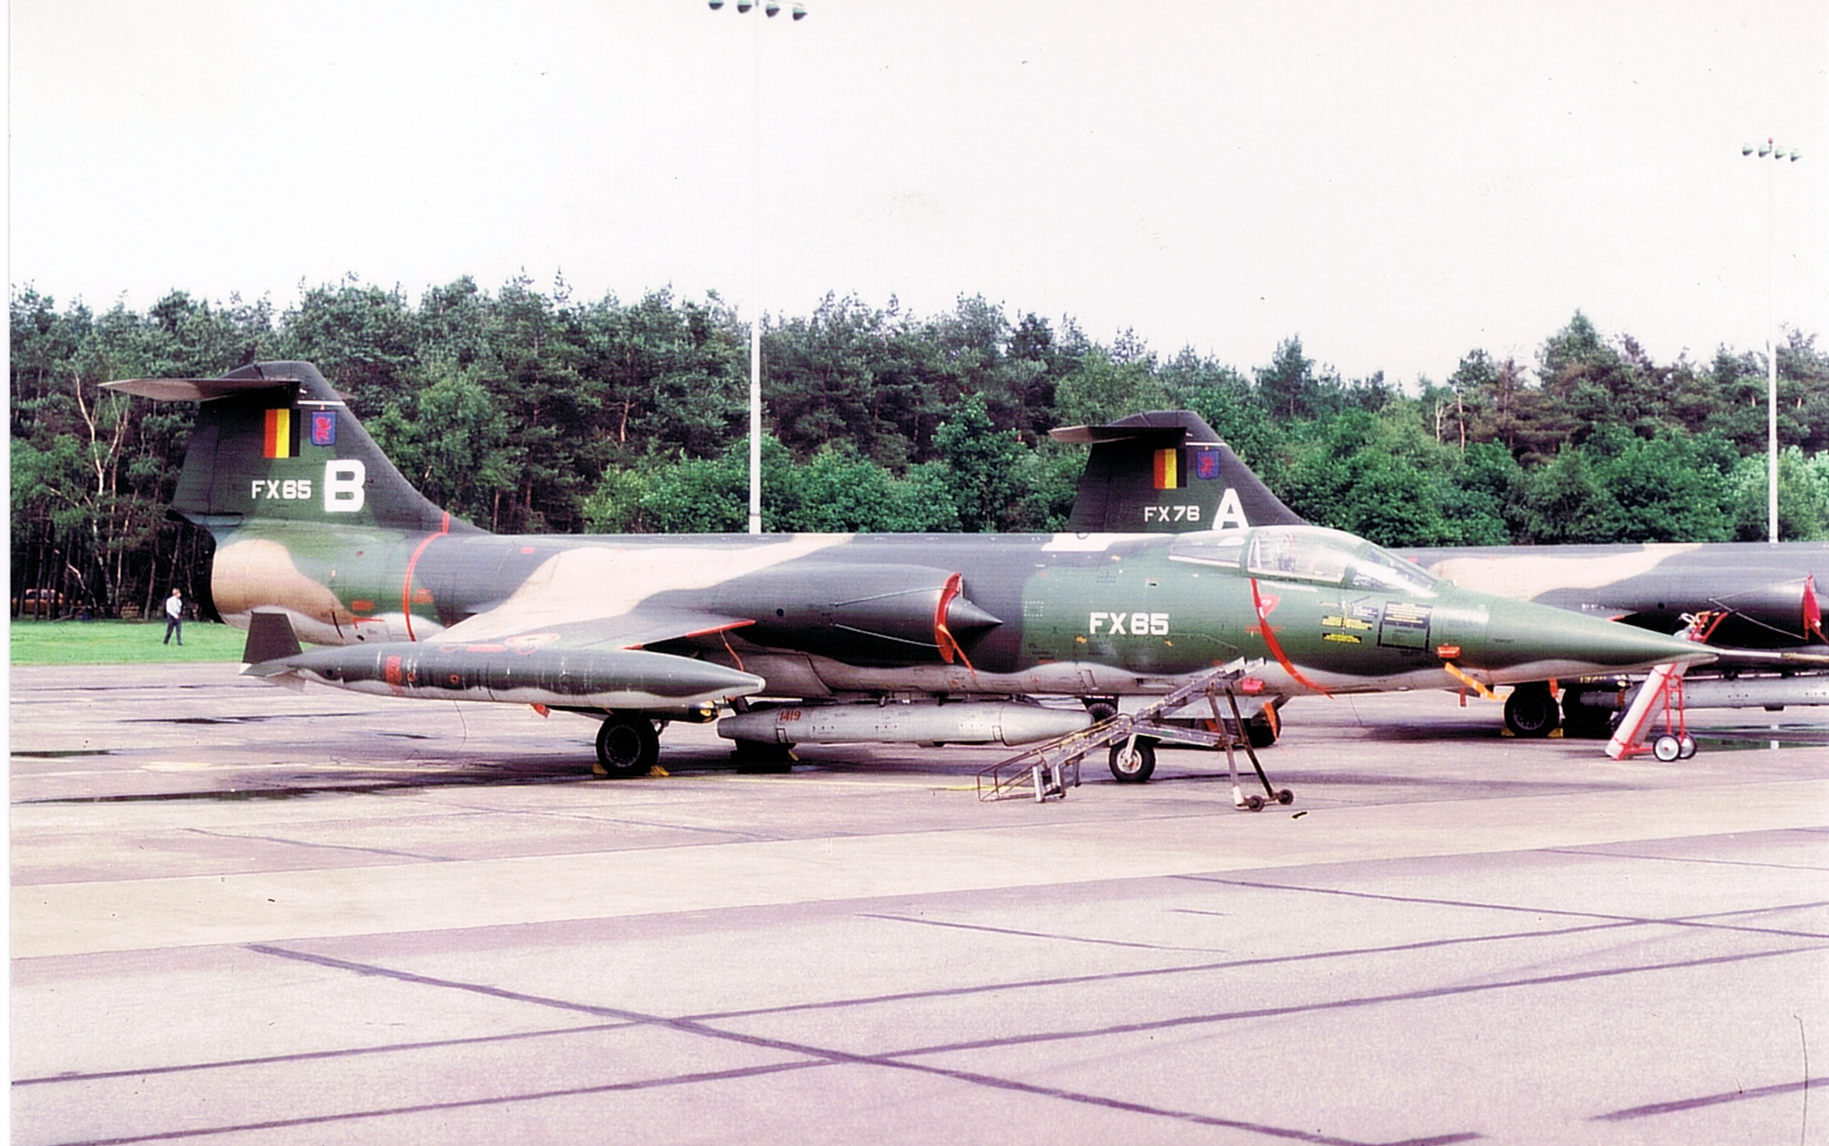 F 104 FX65 And FX78 With White Codes B And A On Tail And Recce Pod